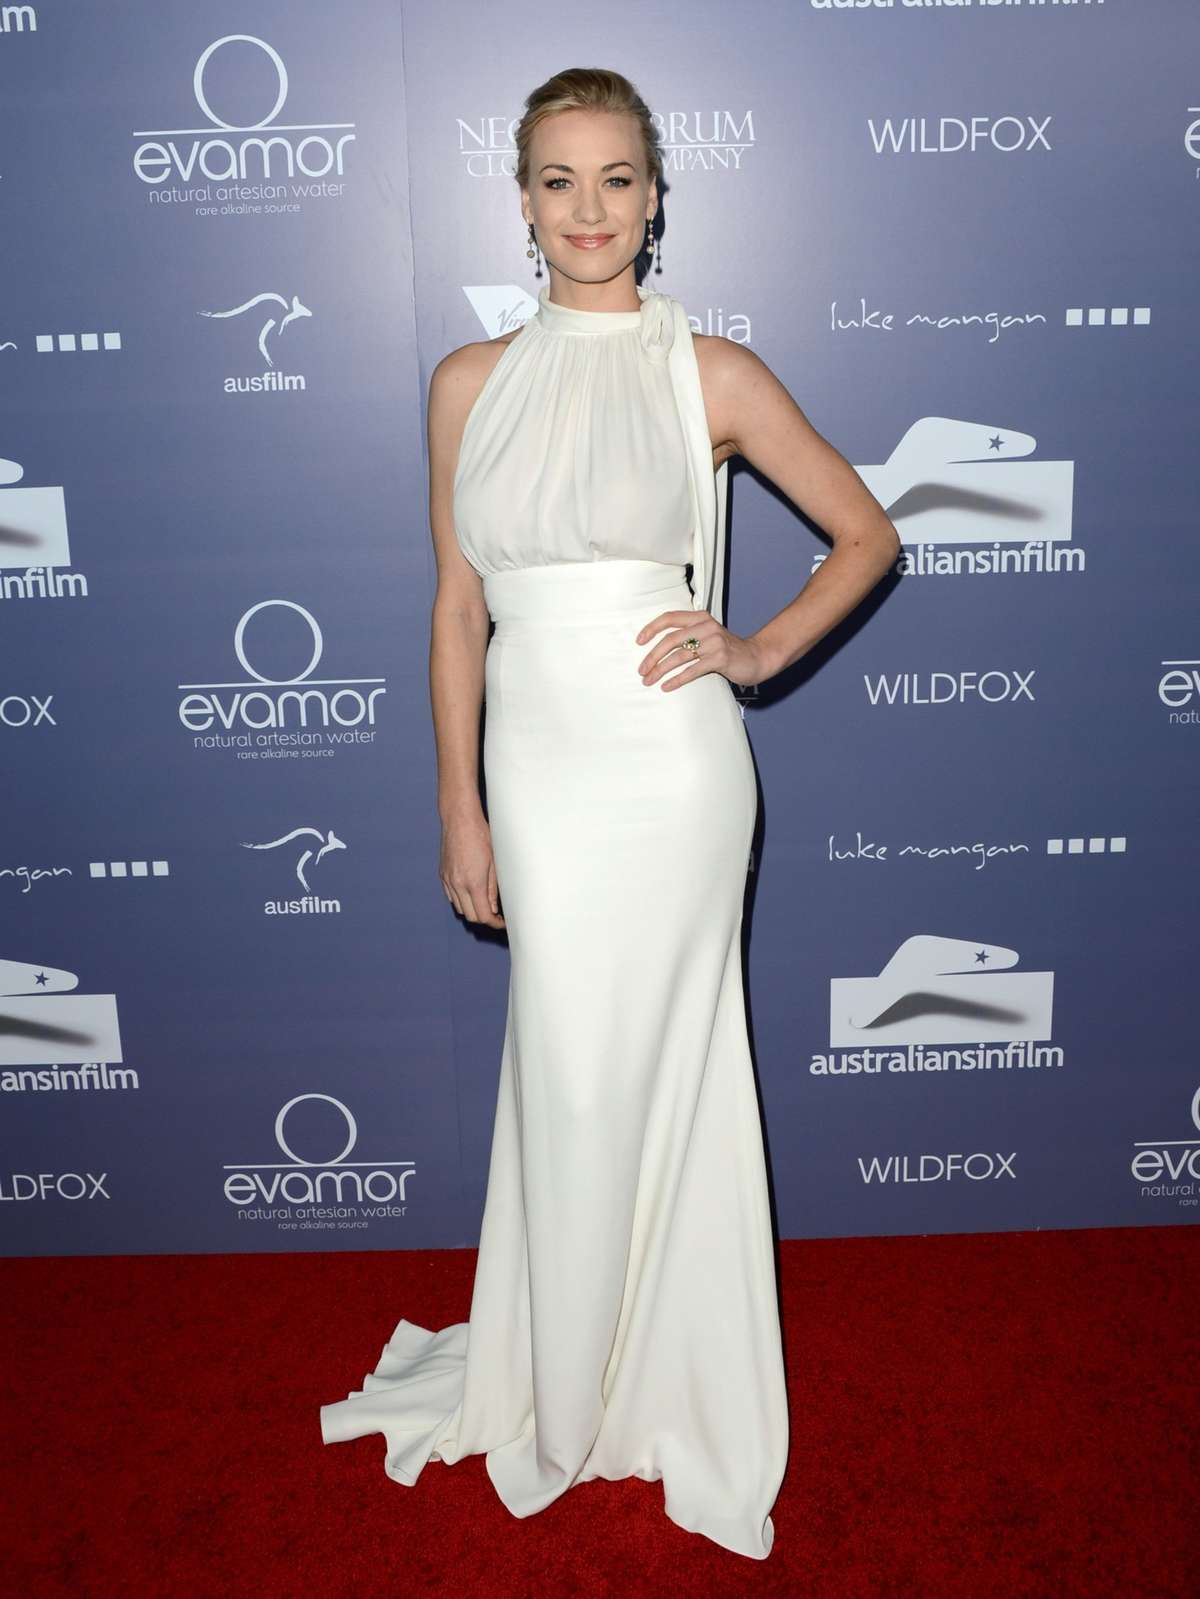 http://1.bp.blogspot.com/-YlnkTkKiVqY/T-yFoONAEsI/AAAAAAAAHM0/sdNwX_GRHIU/s1600/Yvonne+Strahovski+White+Dress+Australians+In+Film+Awards+&+Benefit+Dinner+05.jpg